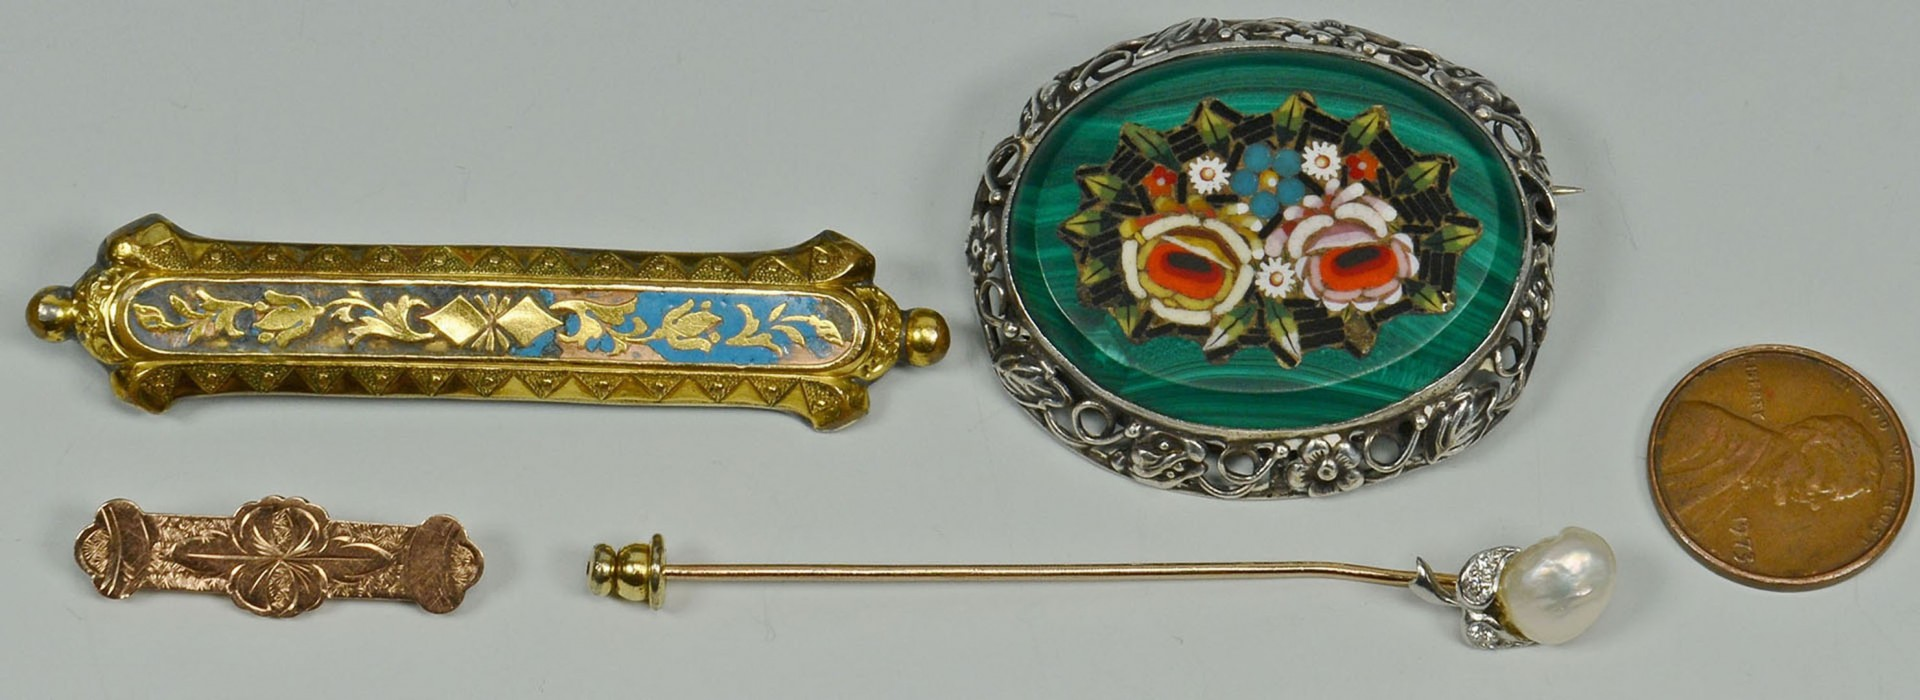 Lot 2872314: Group of 4 antique gold and silver pins